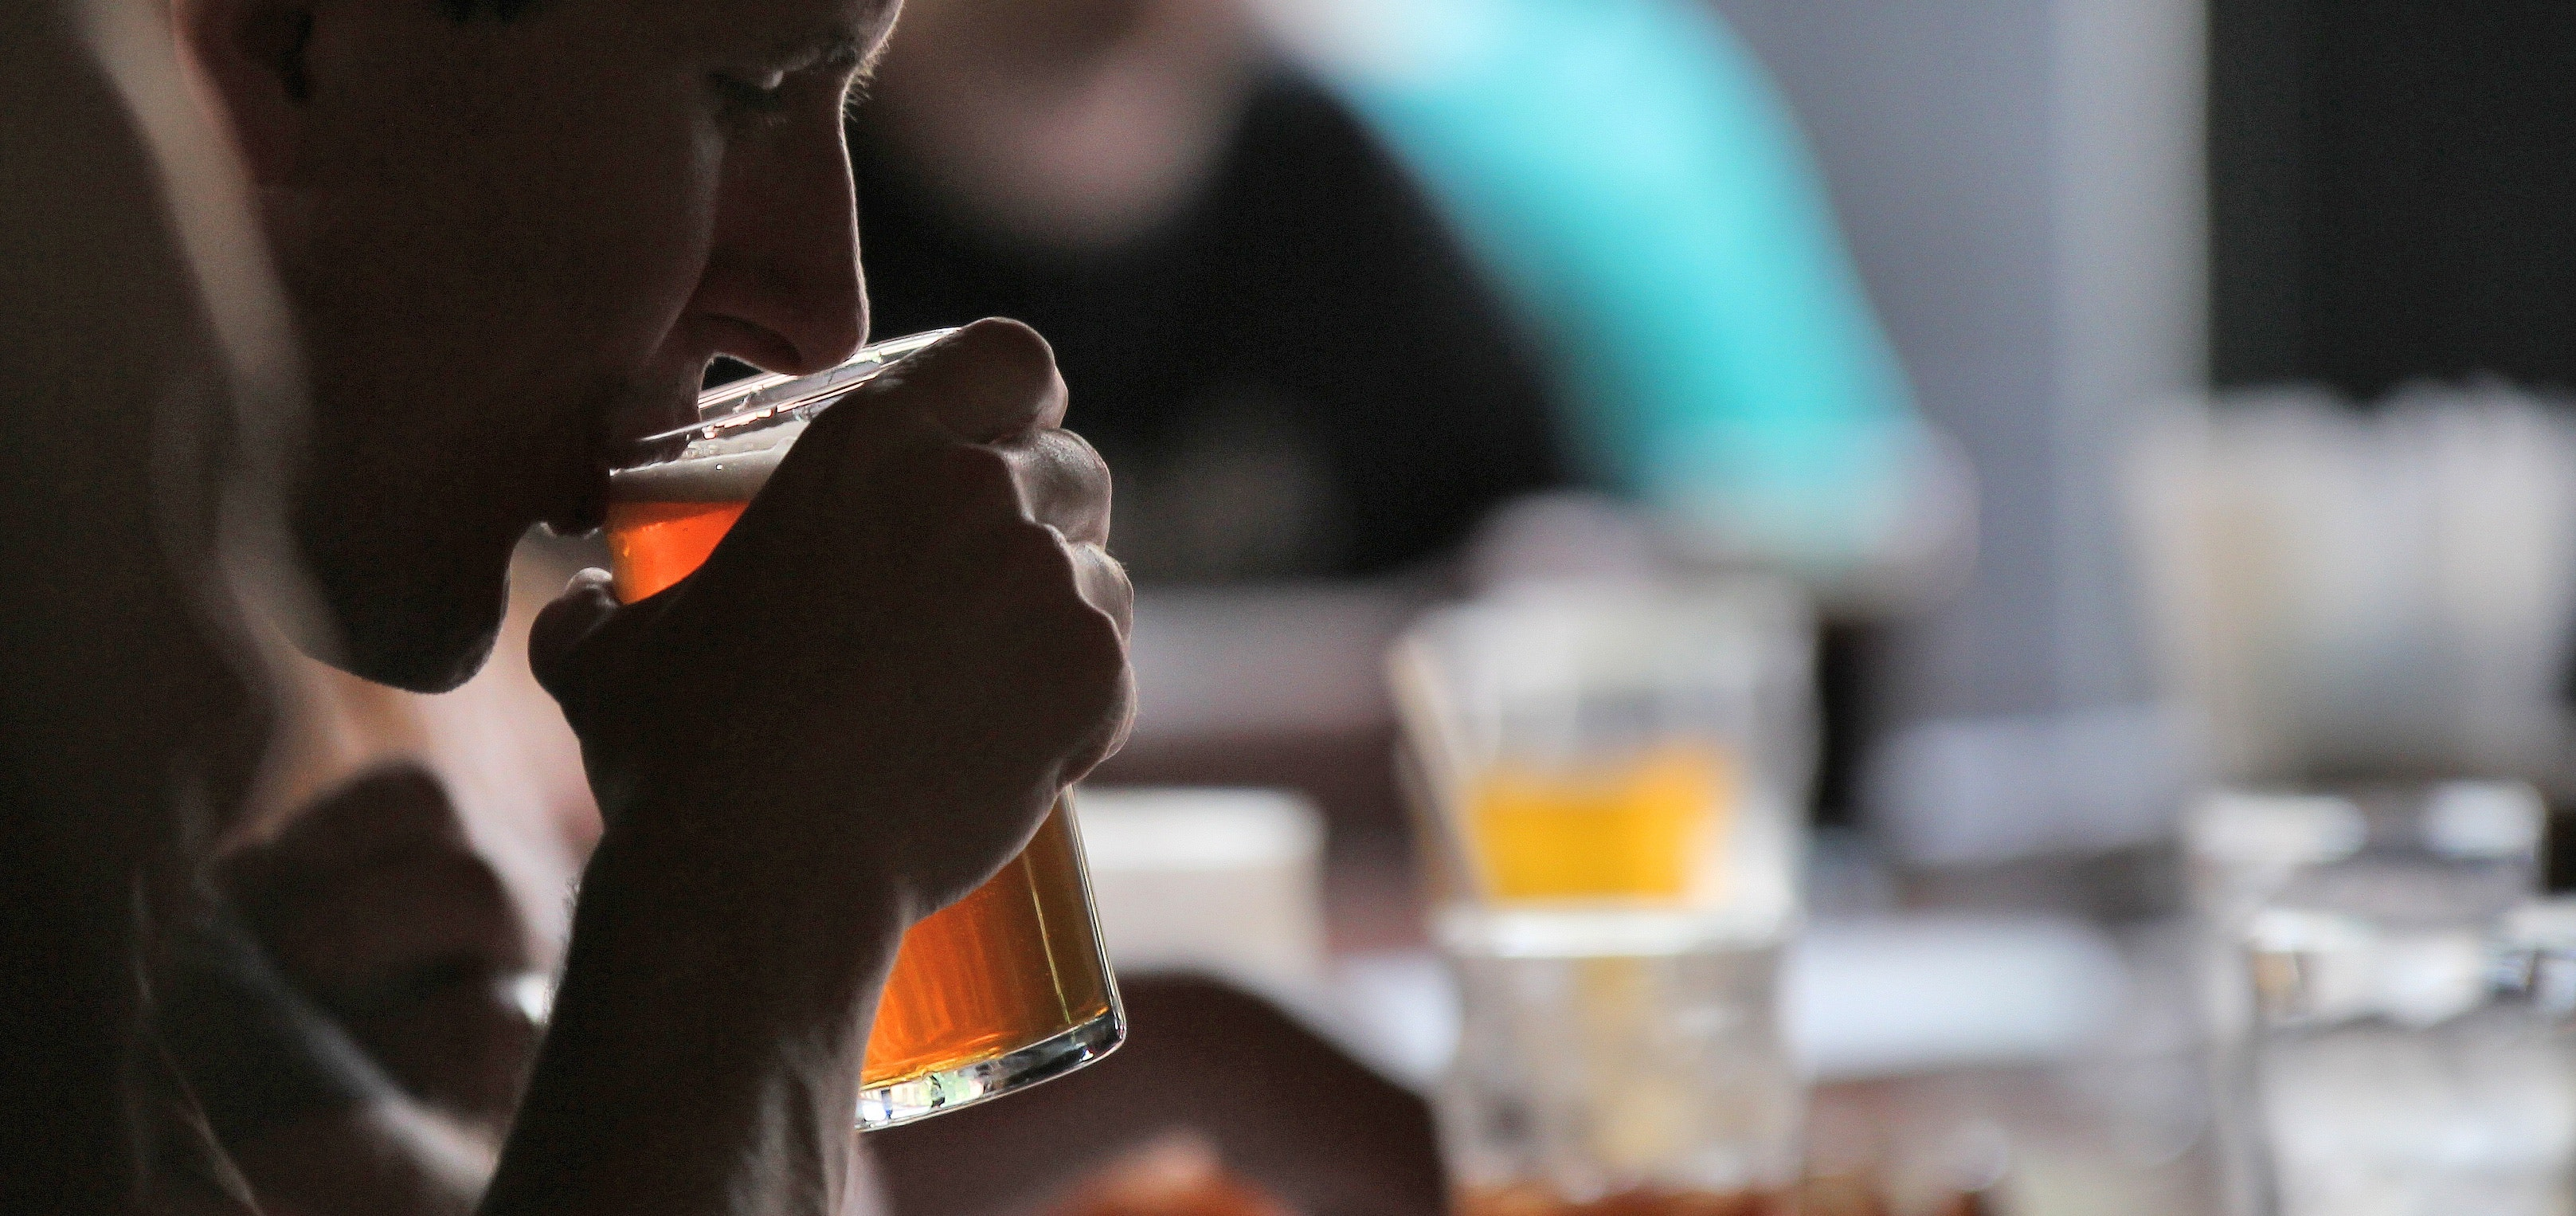 Research Check: can even moderate drinking cause brain damage?